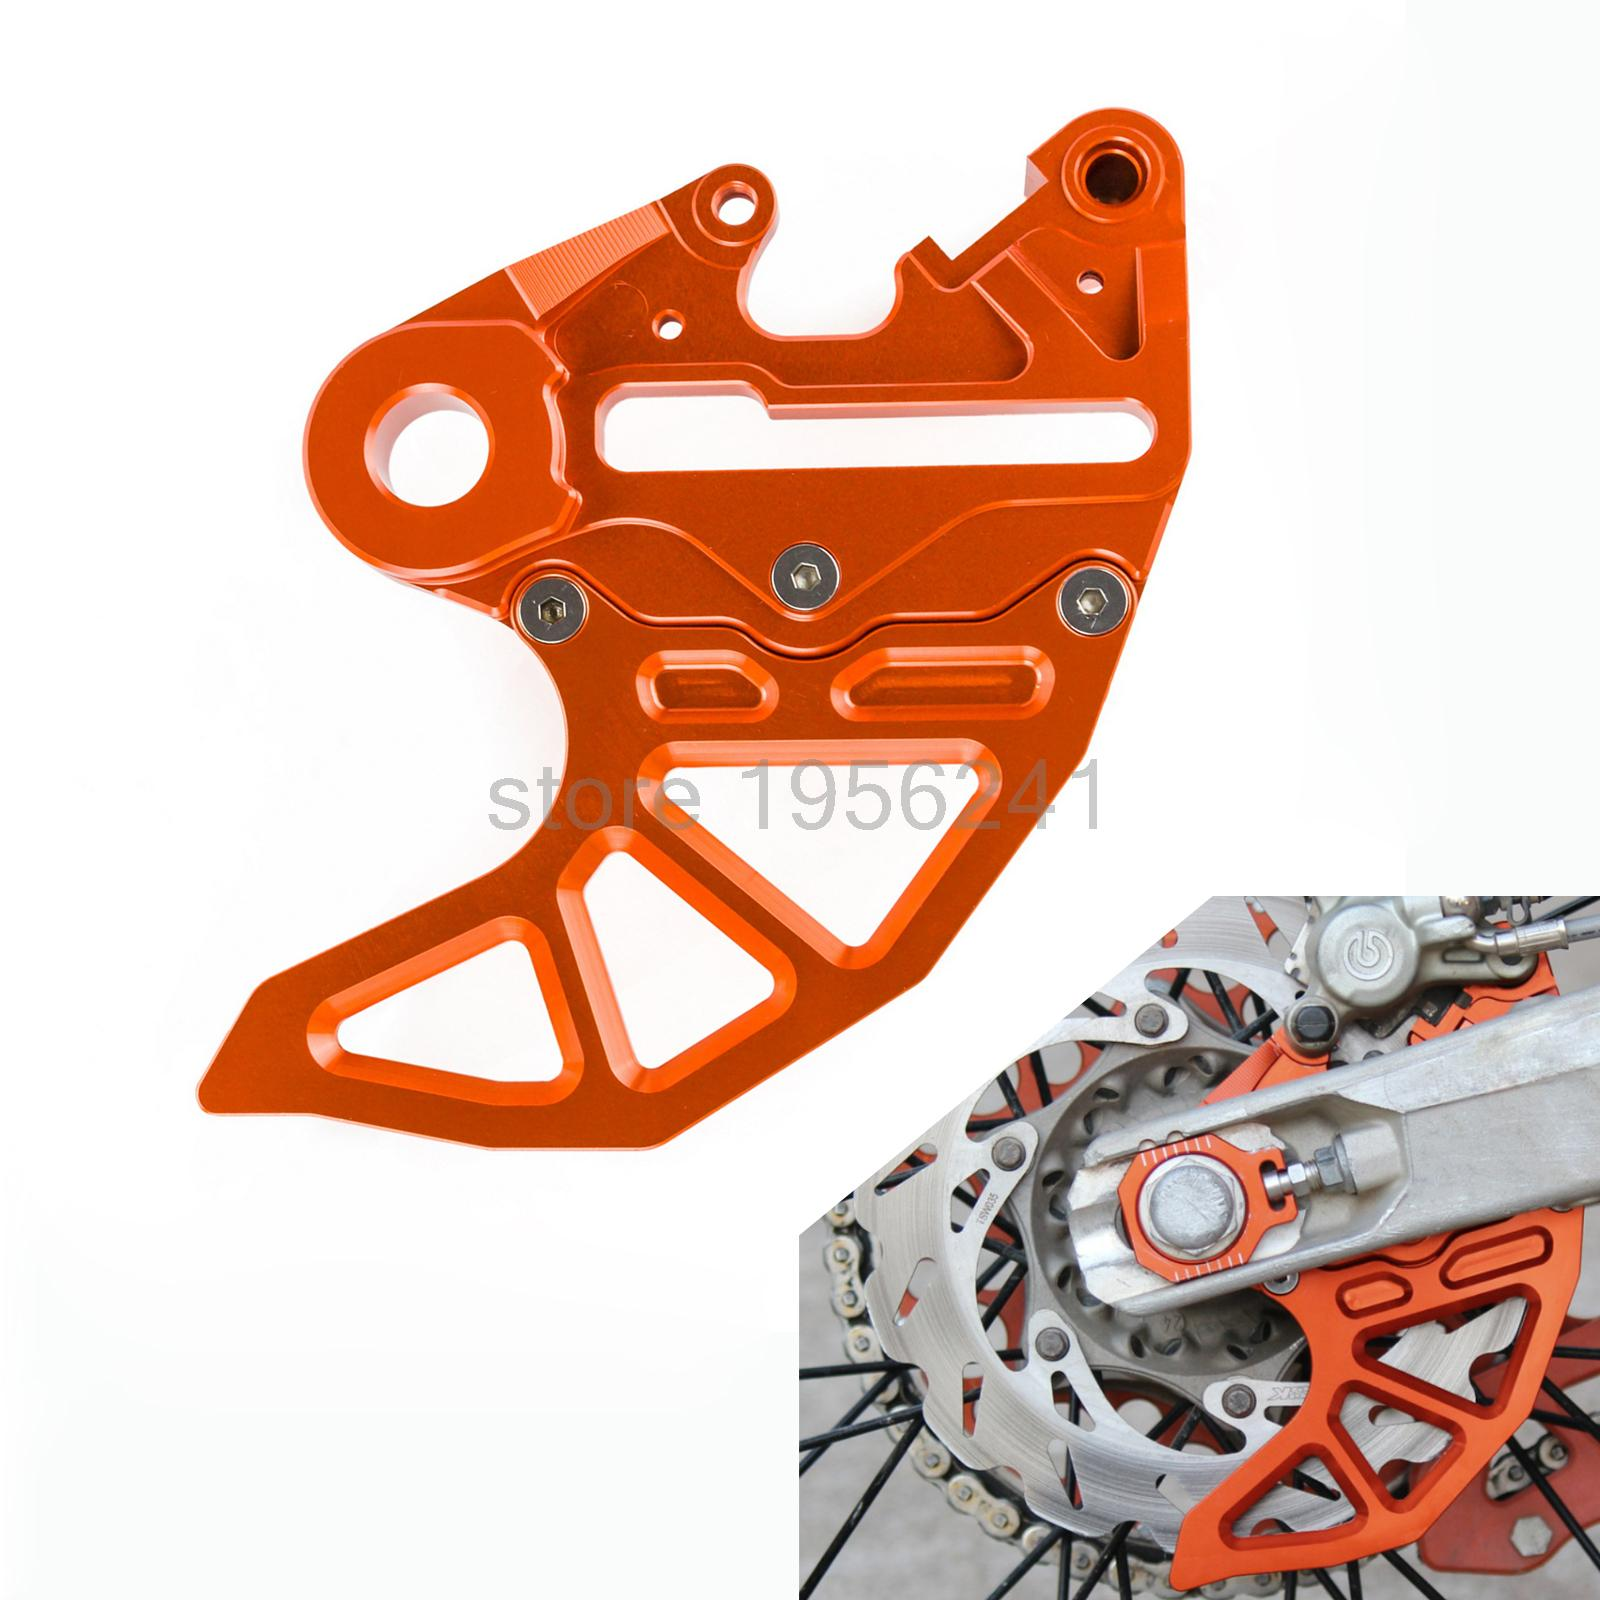 NICECNC CNC Rear Brake Disc Guard Cover For KTM 125 150 250 350 450 SX SXF SX-F SMR 2013 2014 2015 2016 billet cnc rear brake disc guard w caliper bracket for ktm 125 450 sx sx f smr xc xc f 2013 2014 2015 2016